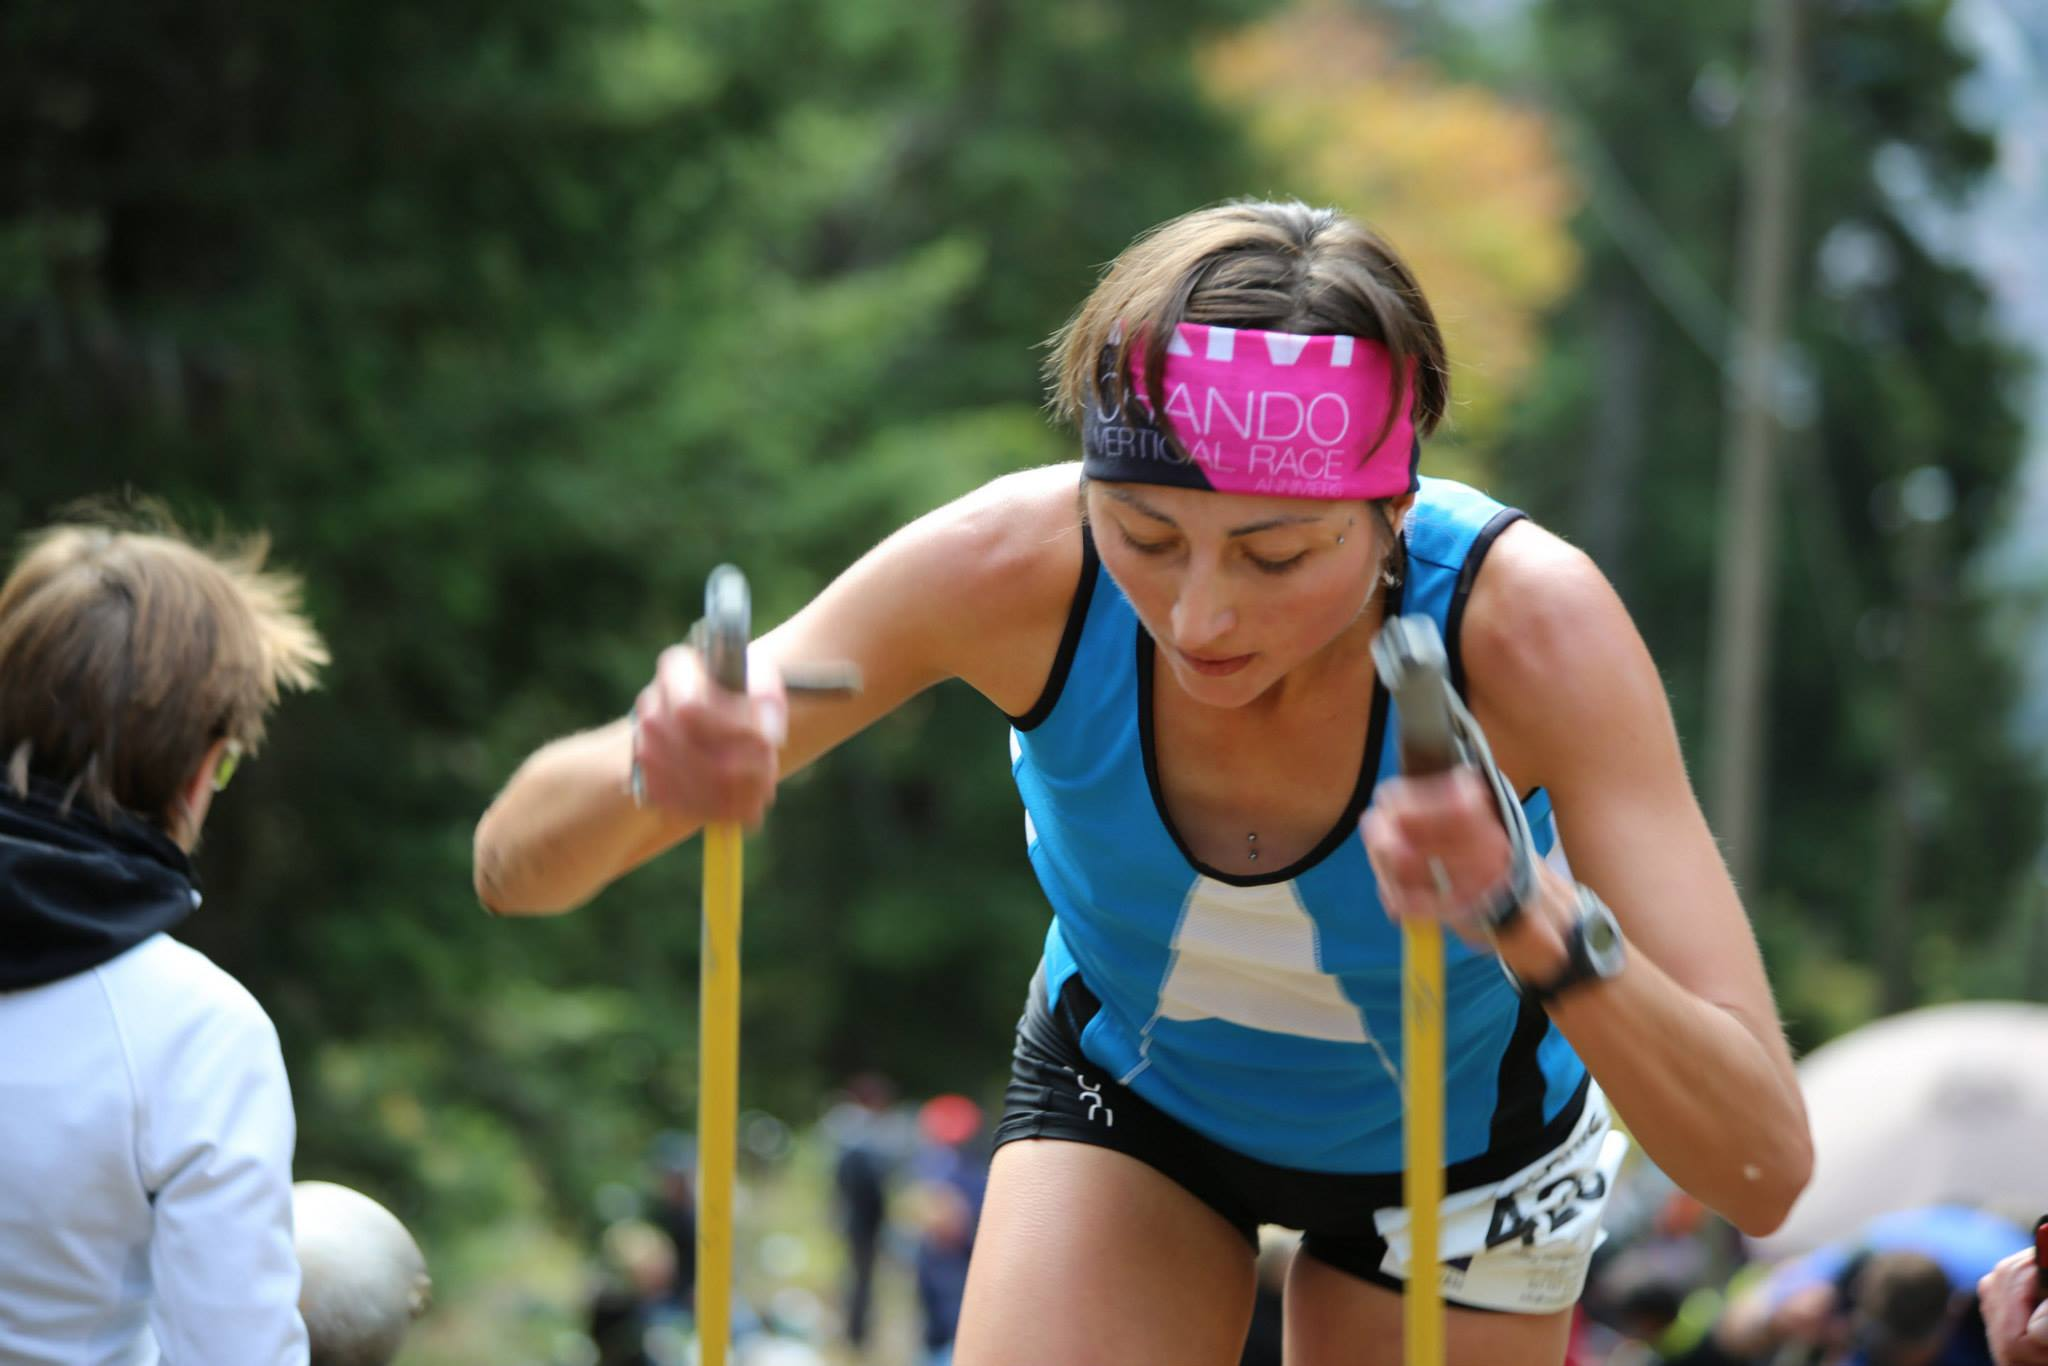 10694188 10152816632029176 4078350069964587547 o - PHOTOS DES ATHLETES FEMININES SUR LE KM VERTICAL DE FULLY (SUISSE) / 25-10-14